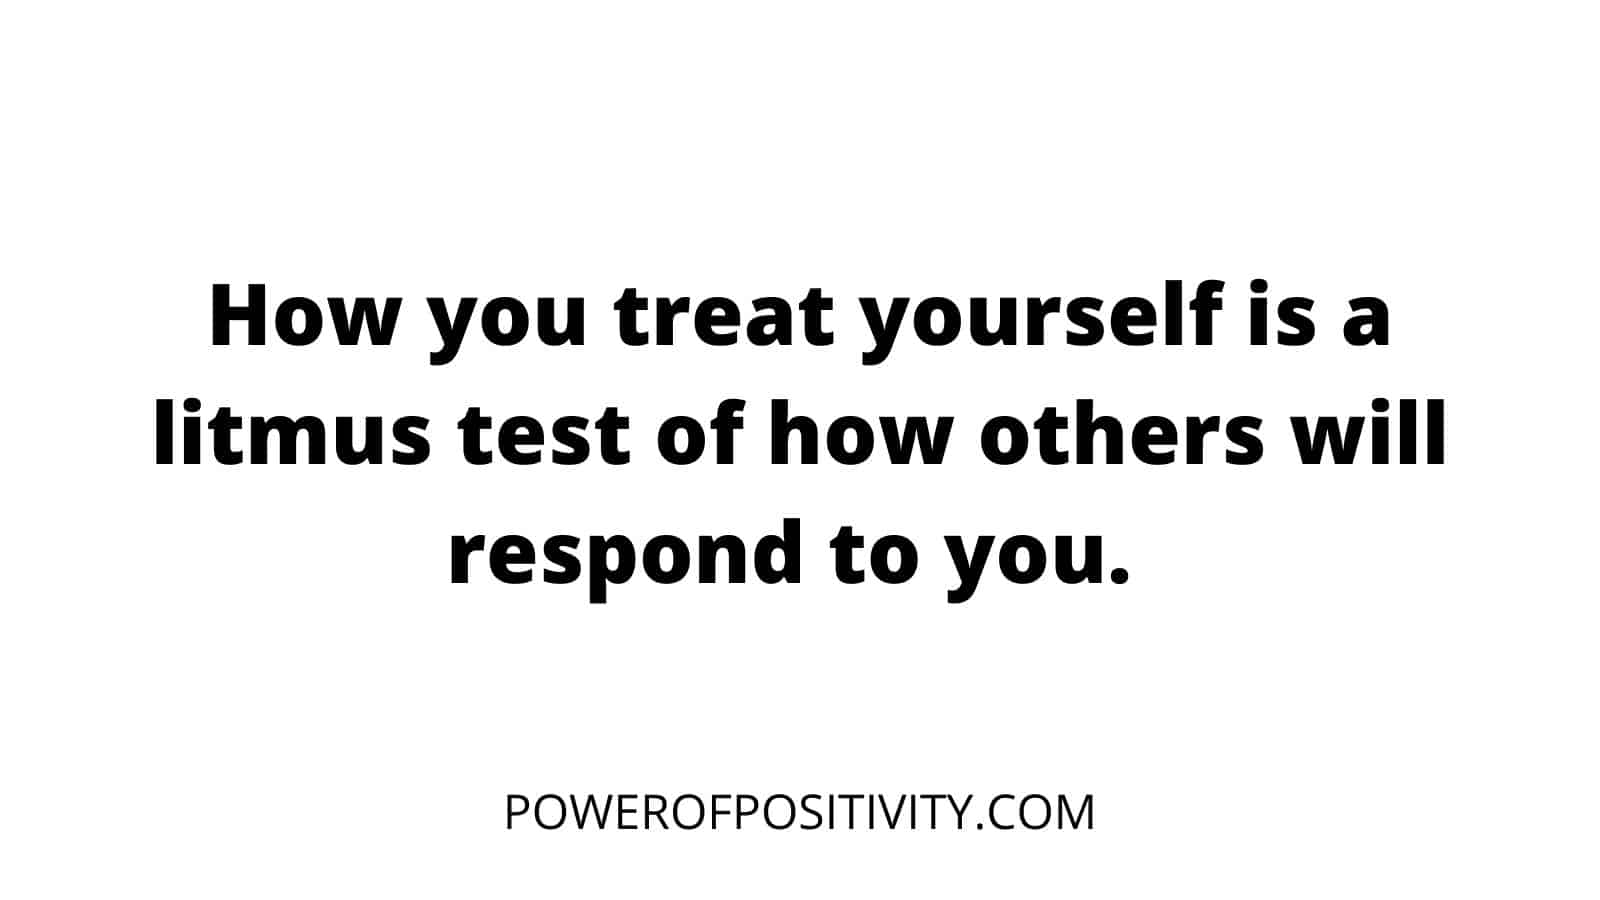 How-you-treat-yourself-is-a-litmus-test-of-how-others-will-respond-to-you.